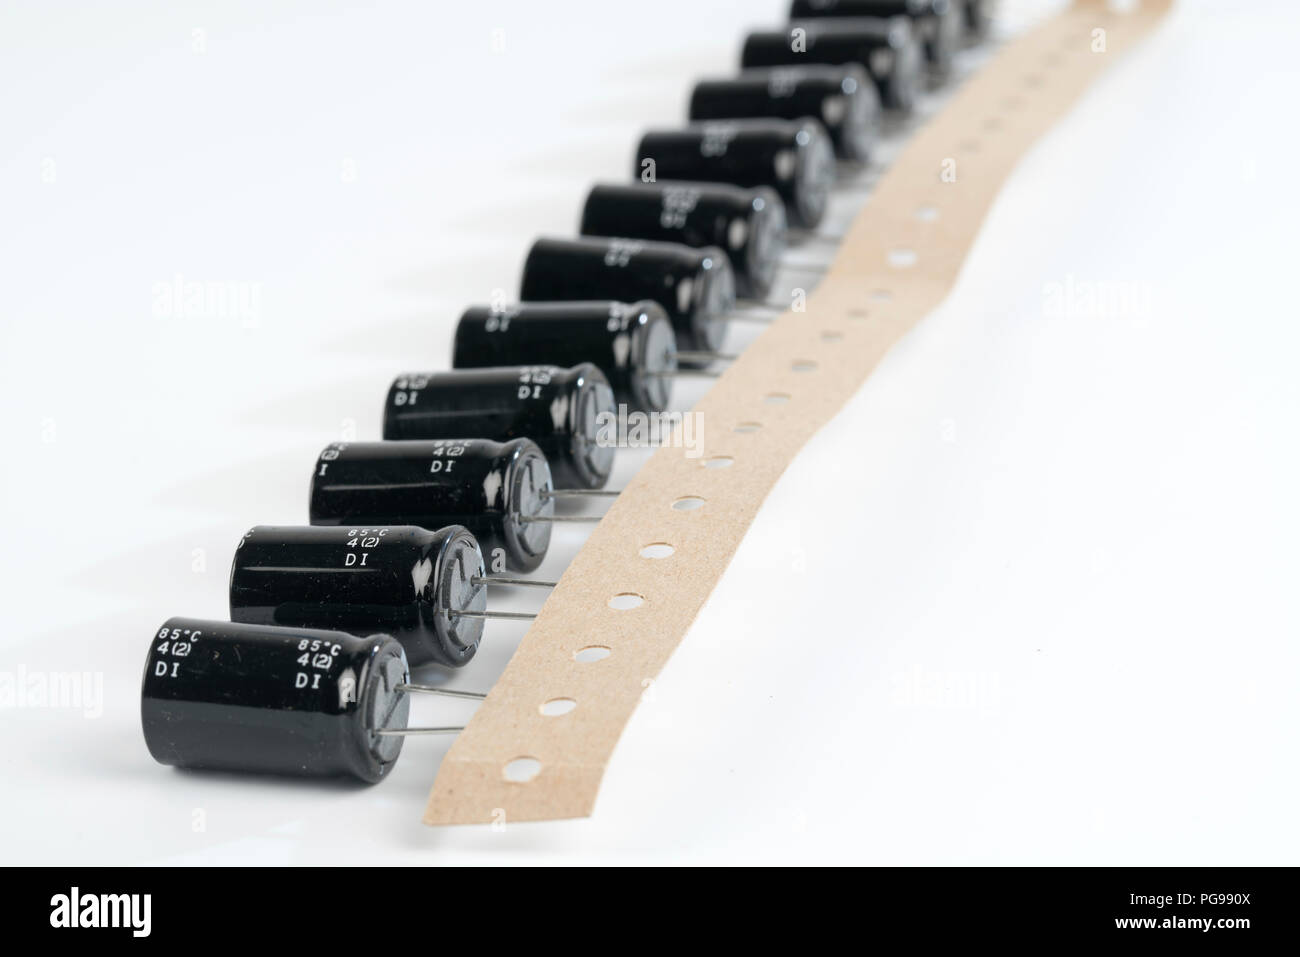 Capacitors. - Stock Image